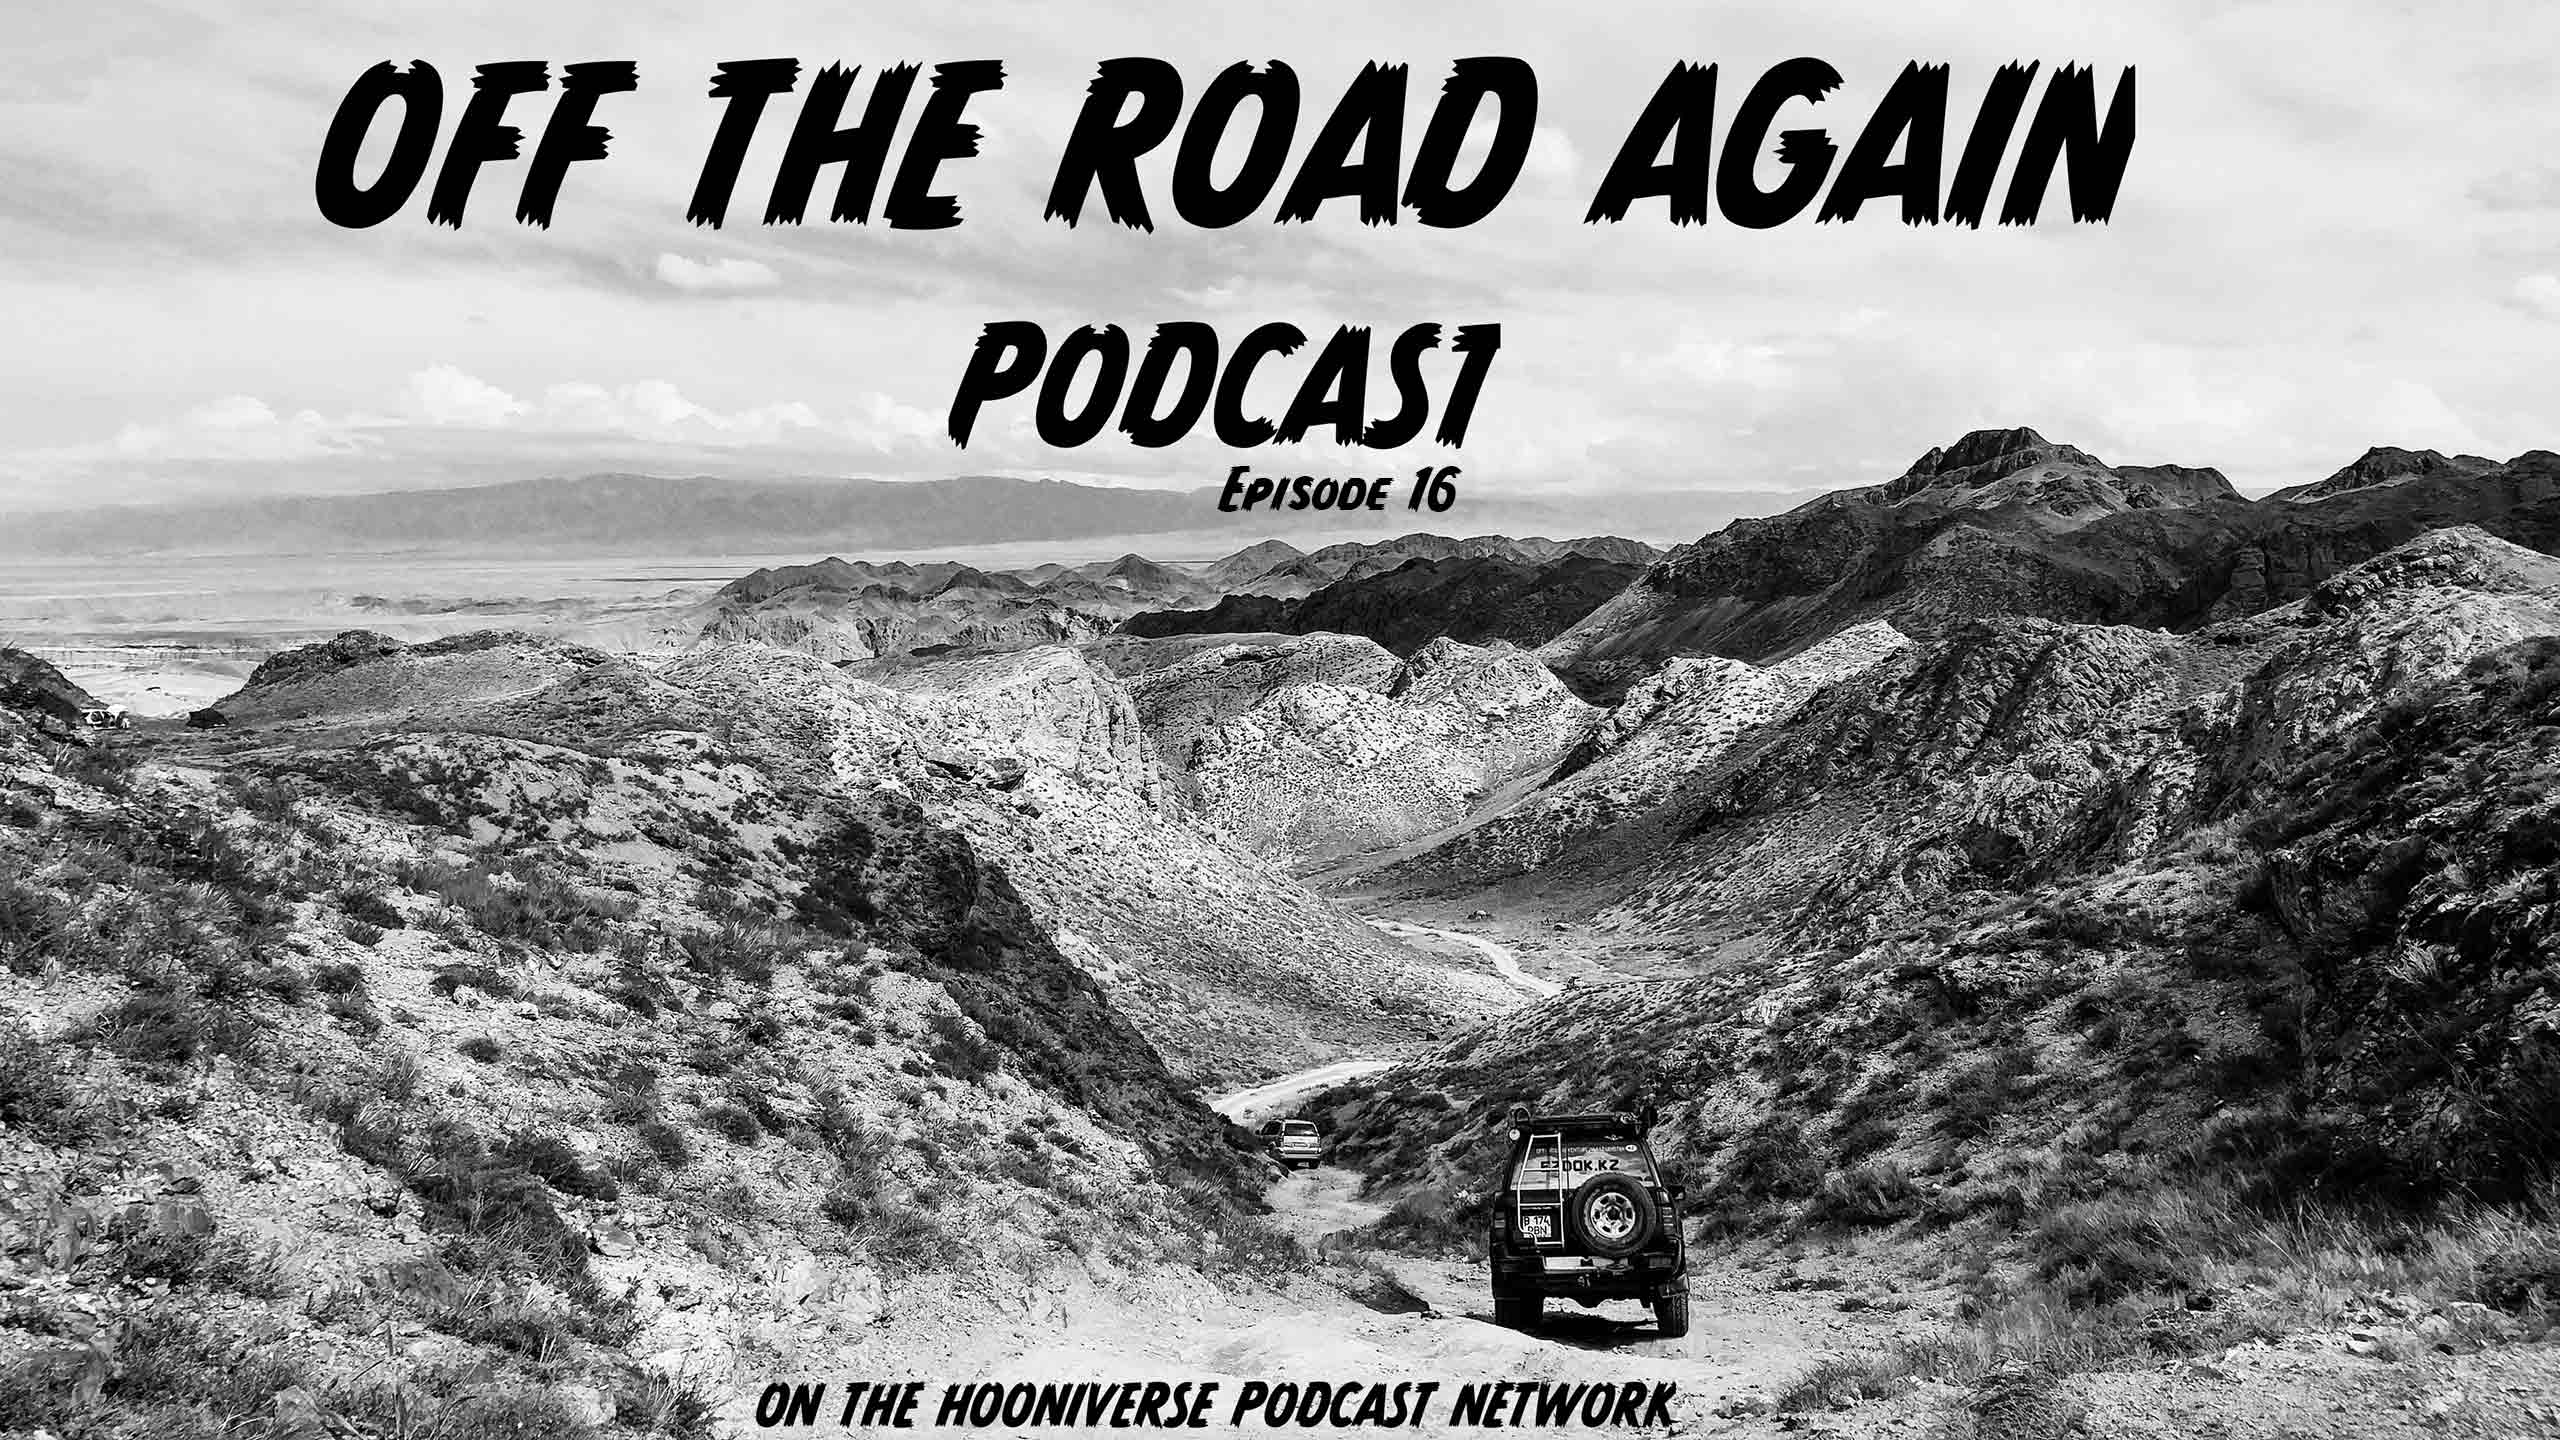 Off the Road Again Podcast - Episode-16